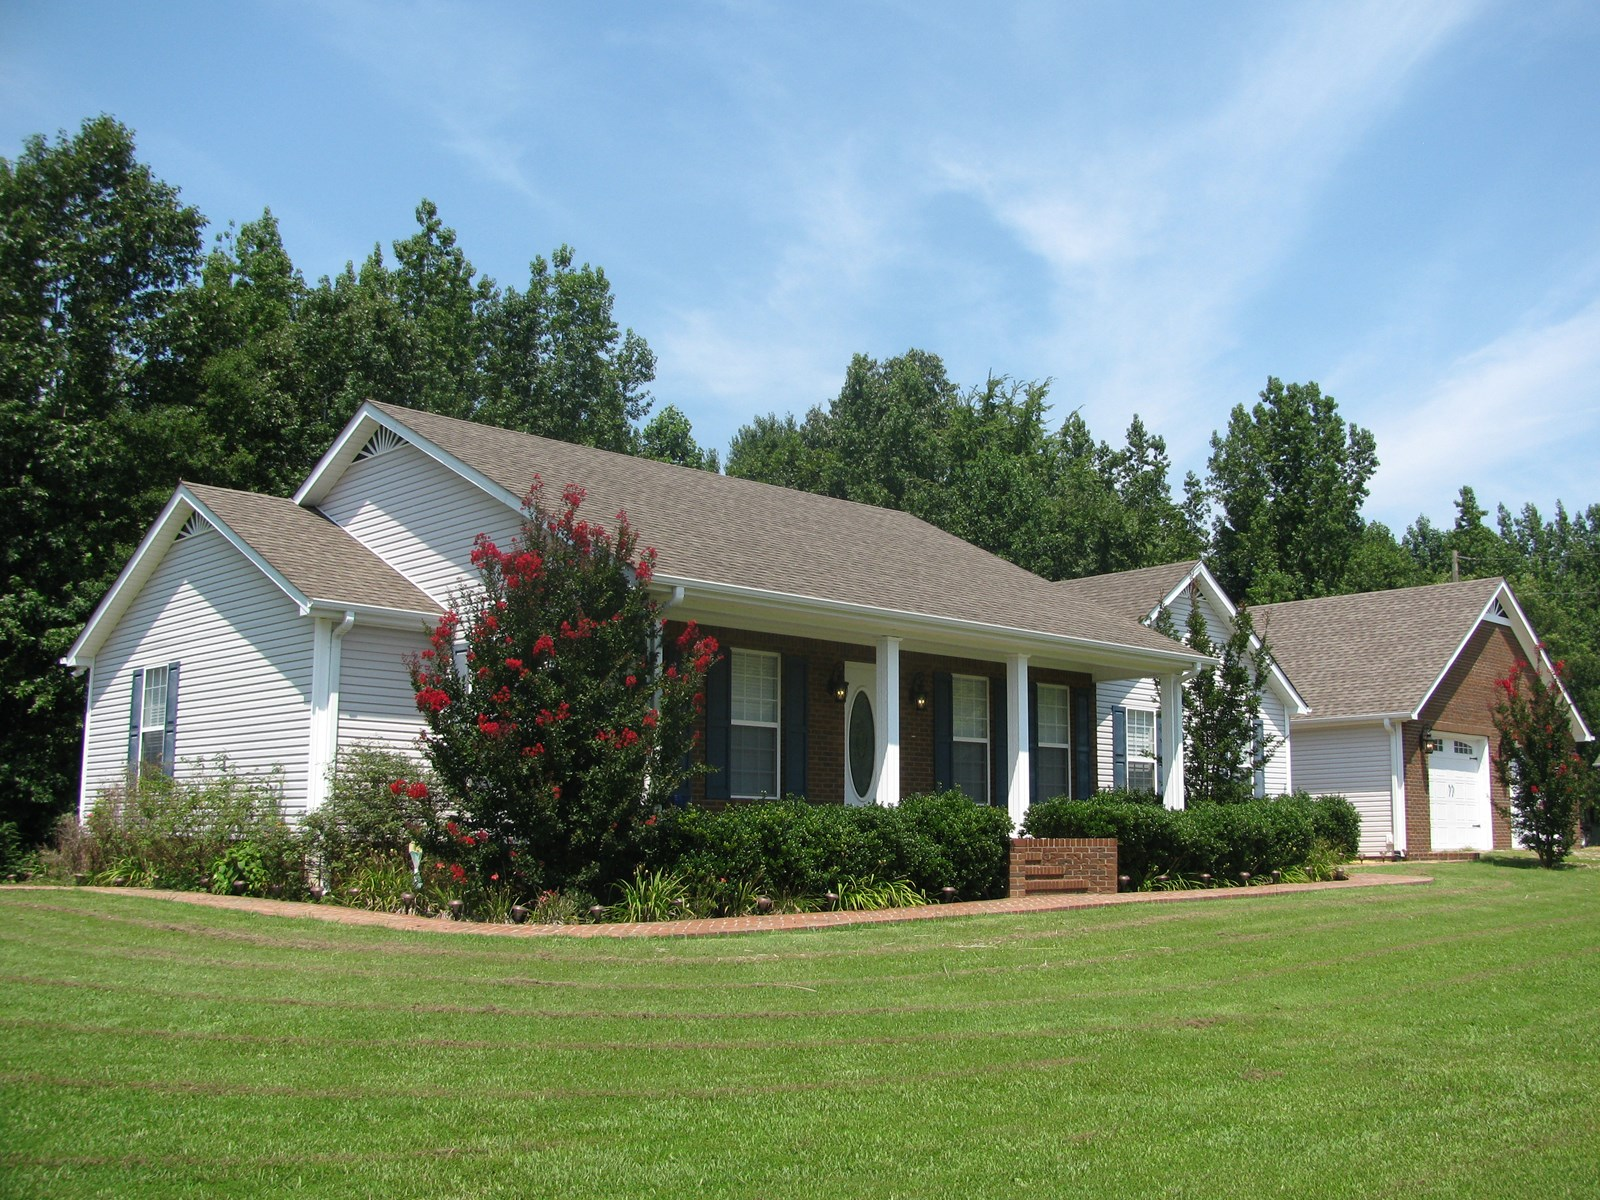 3 BEDROOM COUNTRY HOME FOR SALE IN ADAMSVILLE, TN